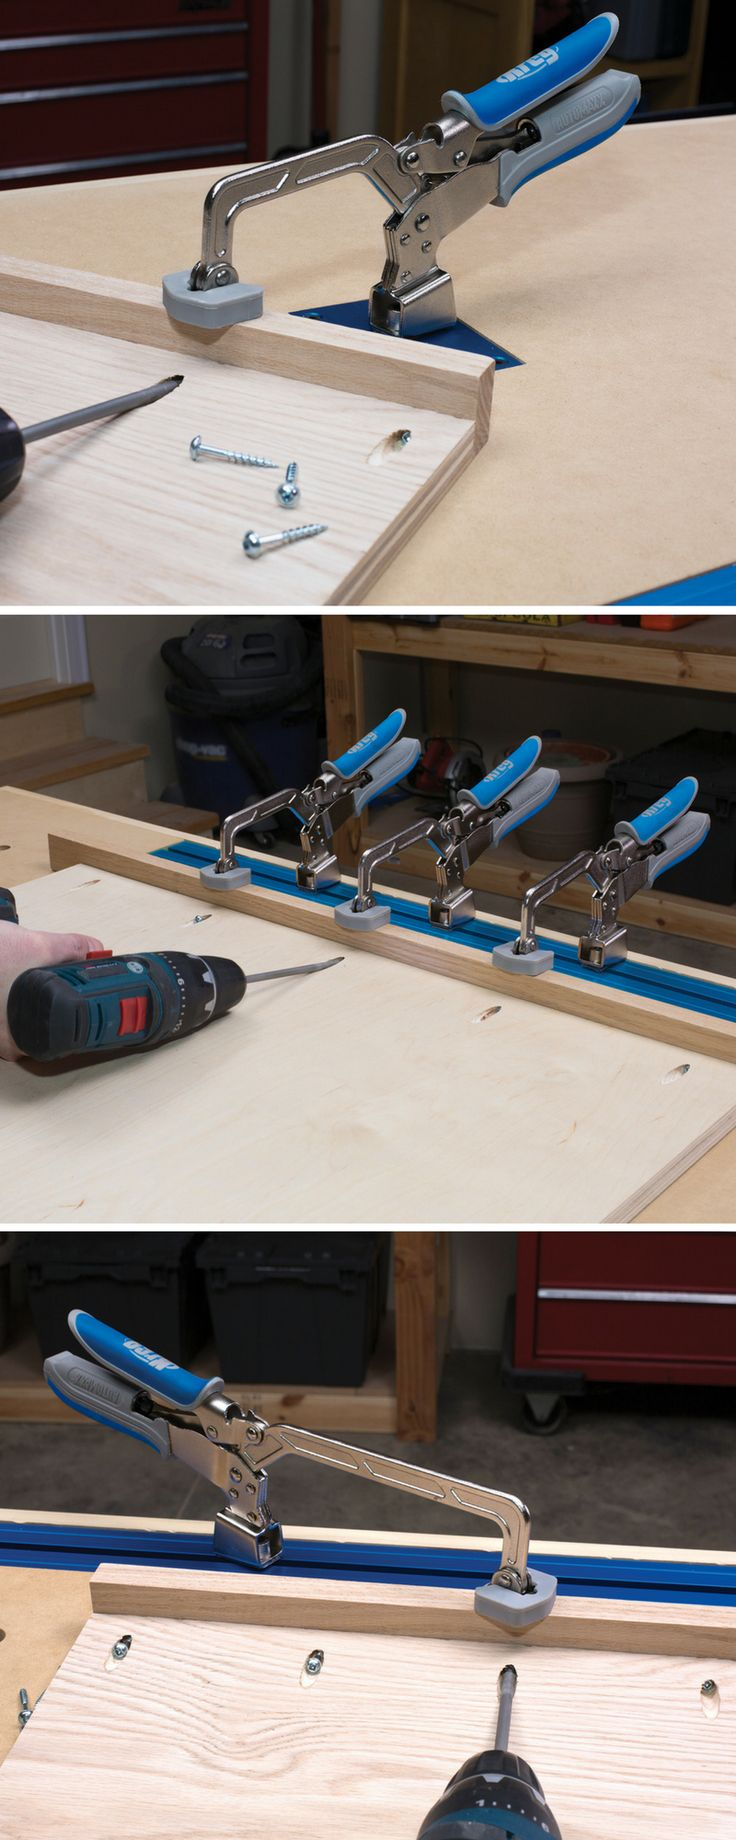 kreg bench clamps offer a fast